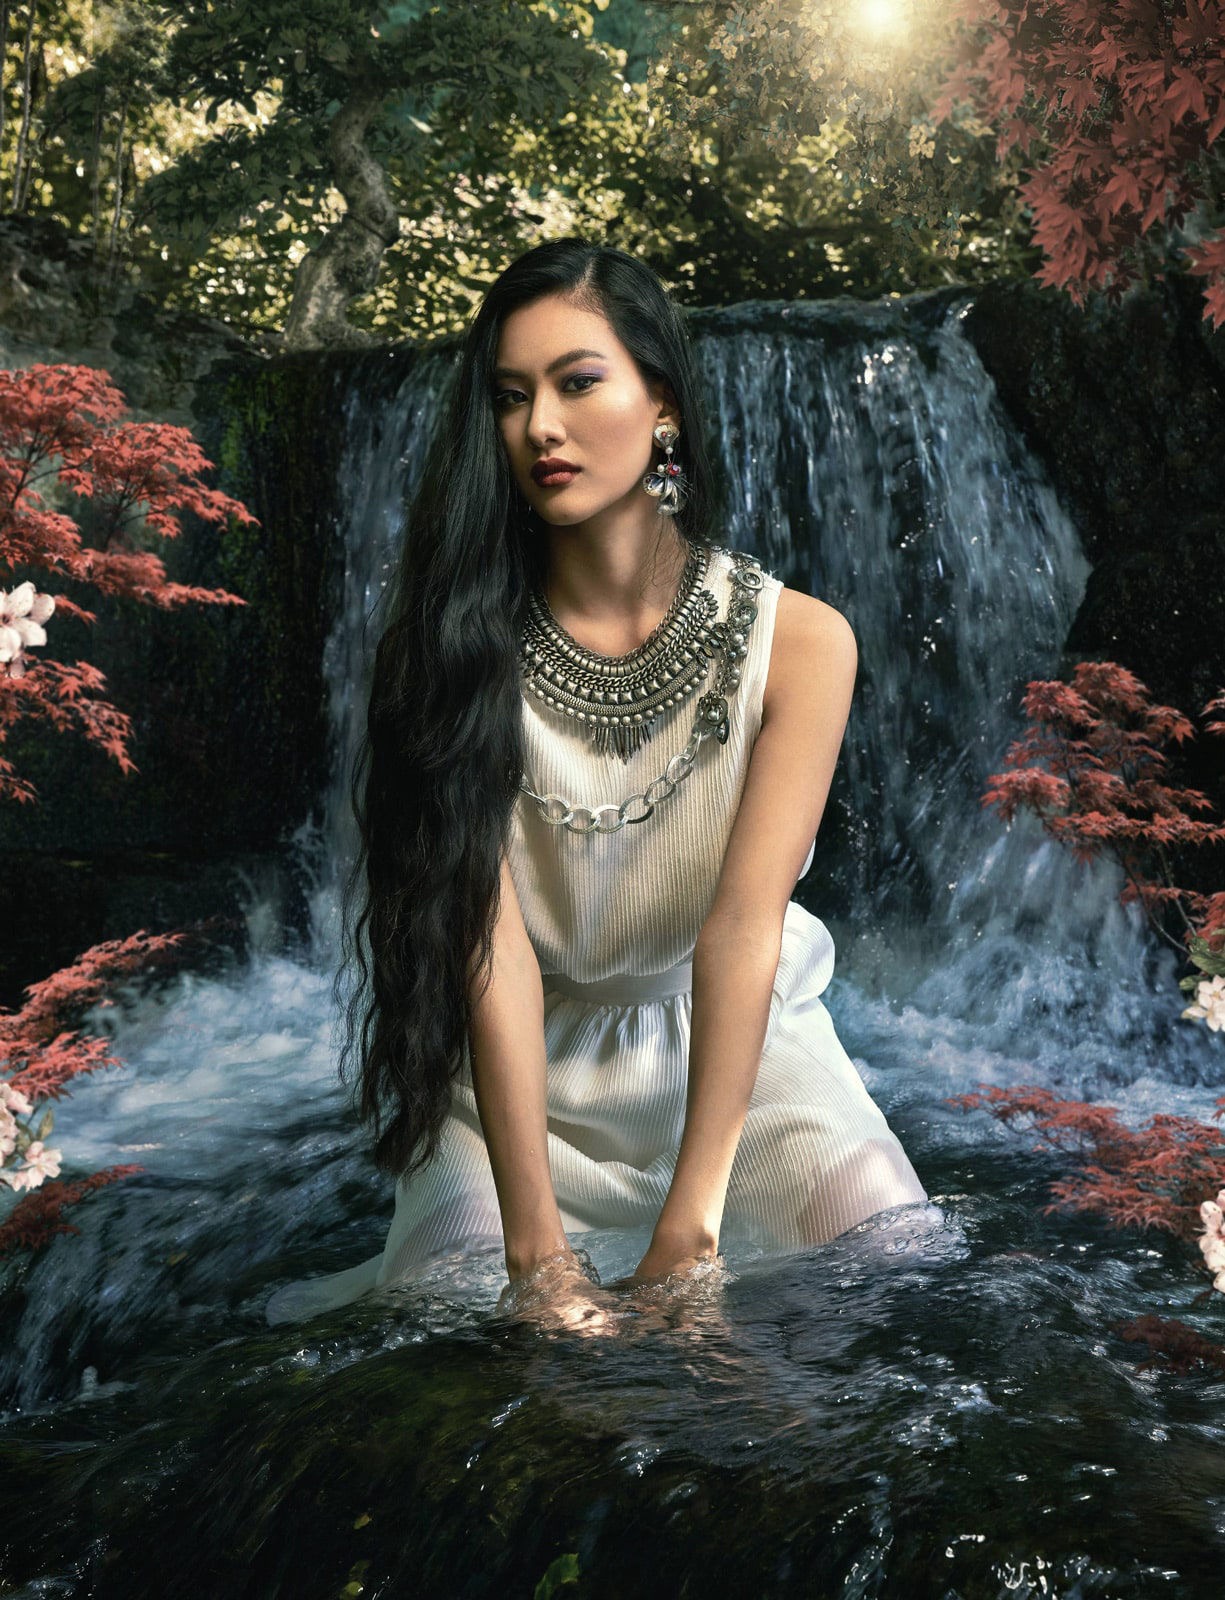 fashion photography of a cinese model posing in a forest with waterfalls